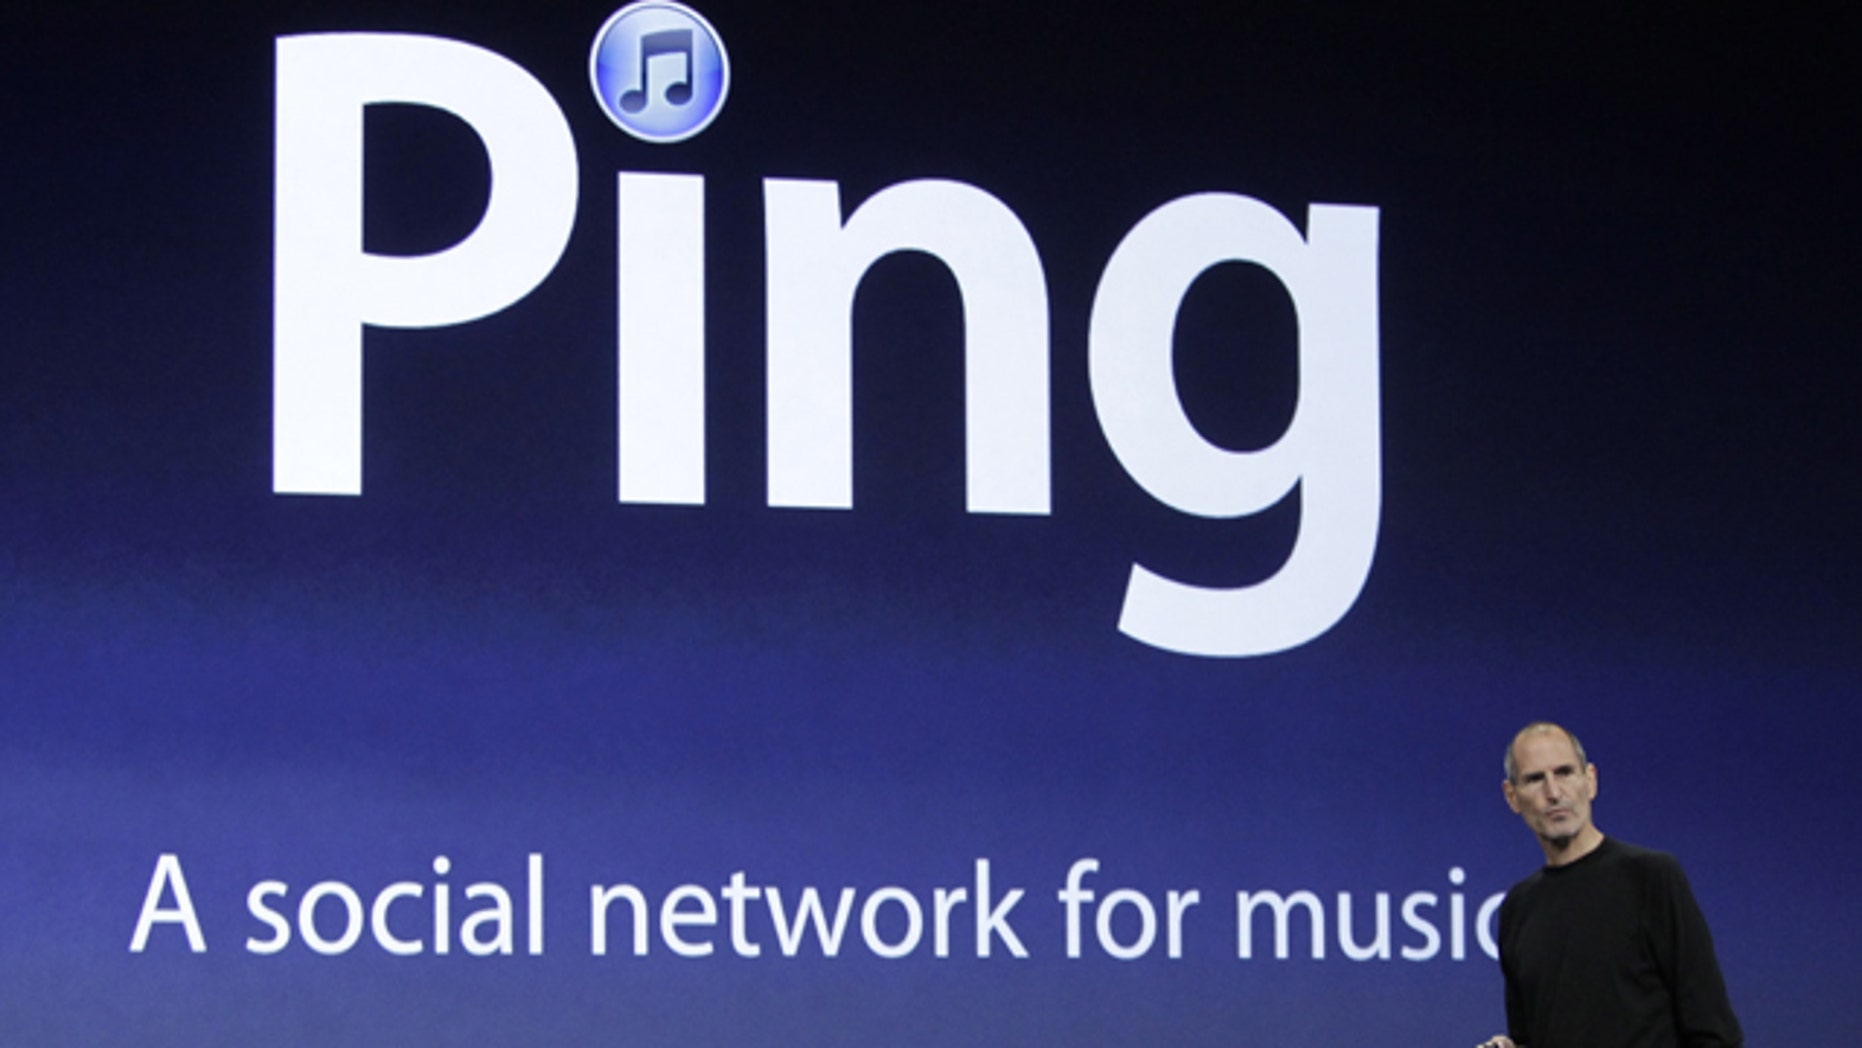 Apple CEO Steve Jobs unveils Ping, a social network for music, at a news conference in San Francisco, Wednesday, Sept. 1, 2010.